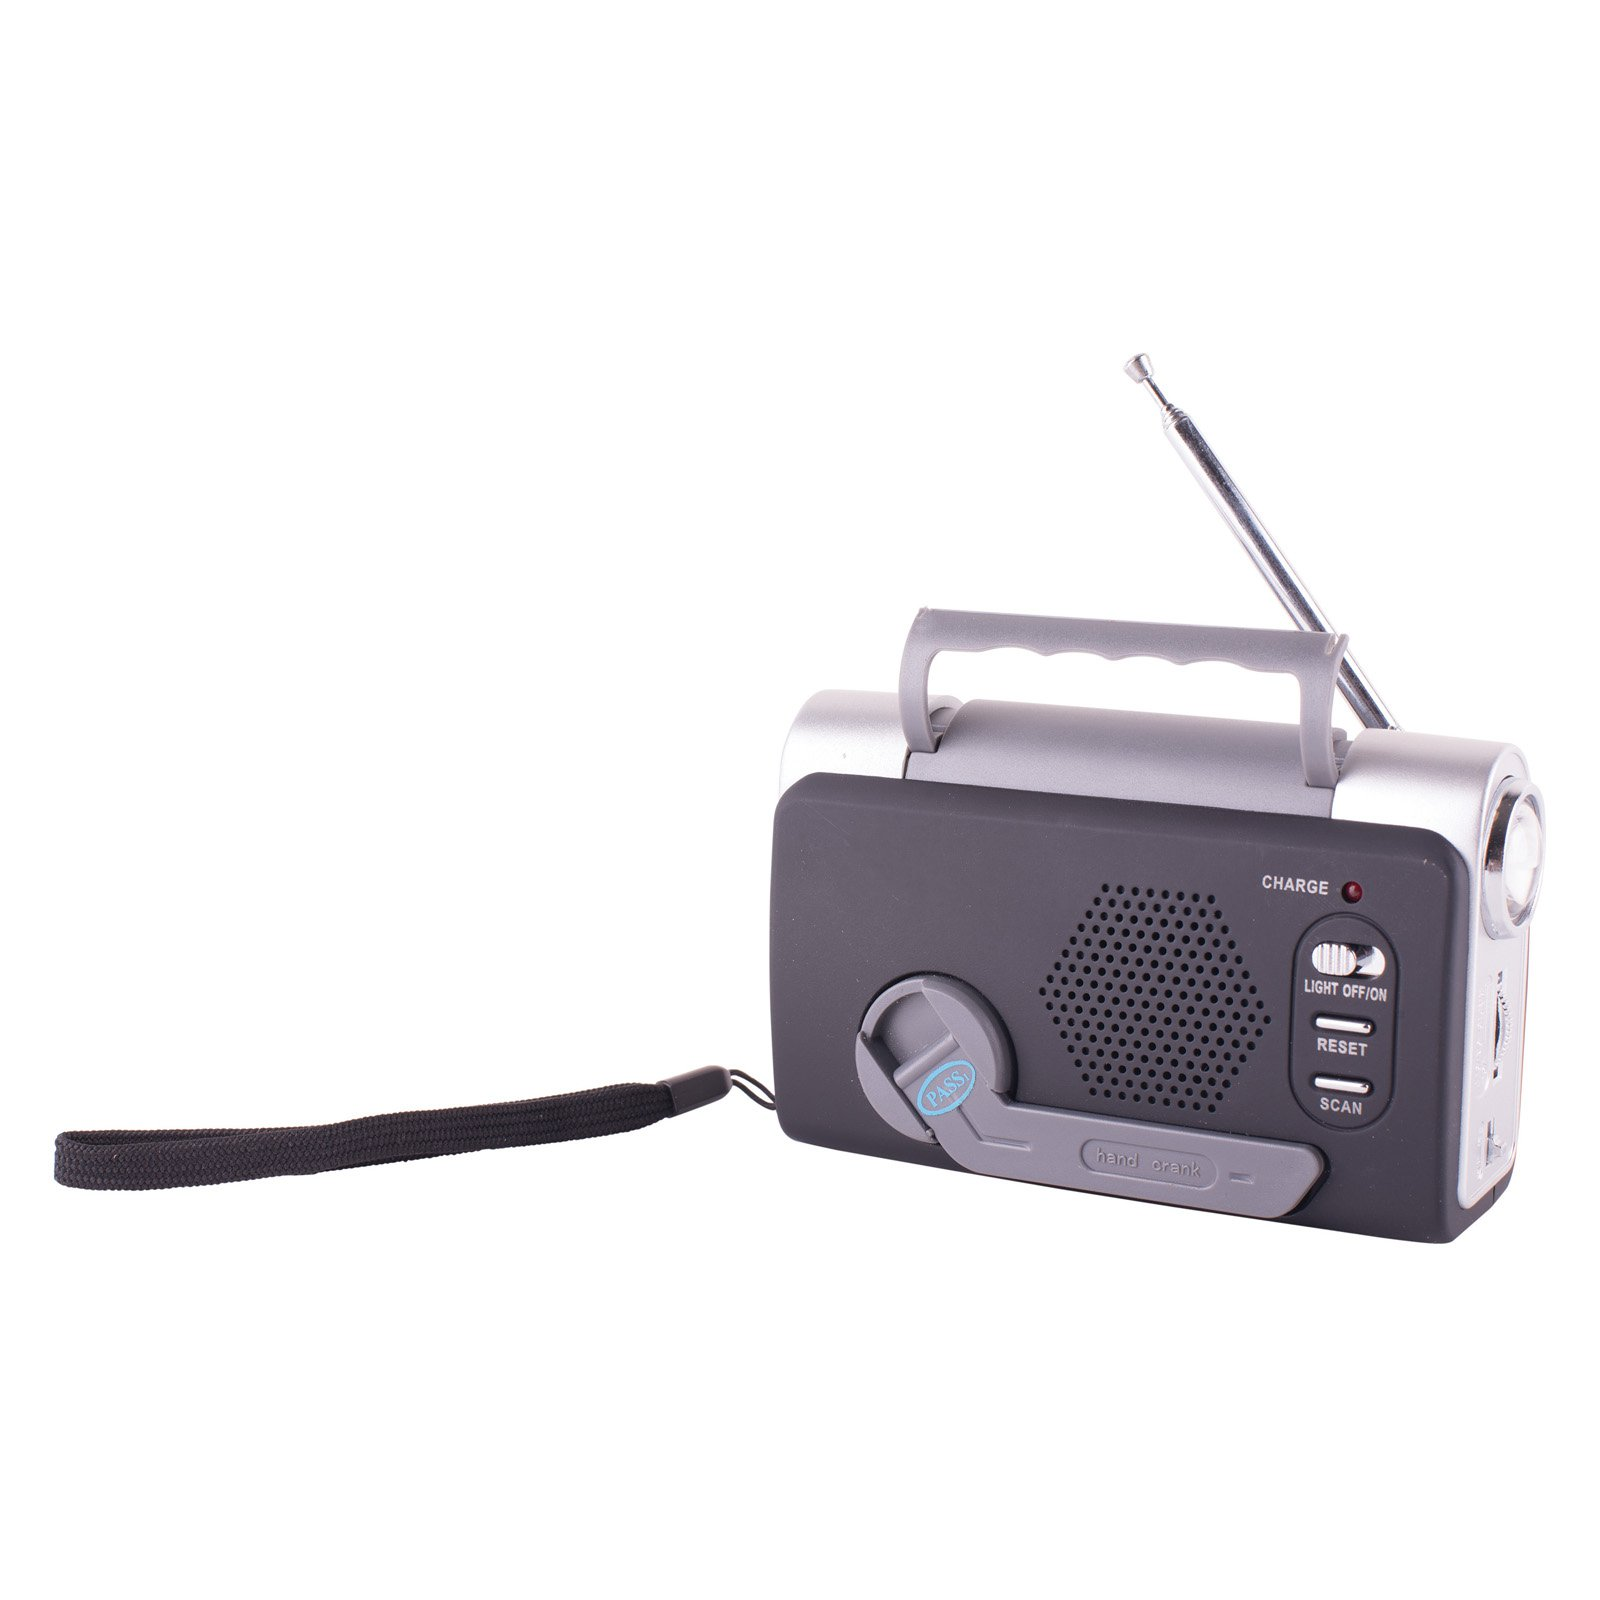 Stansport FM Weather Band Dynamo Radio by Stansport